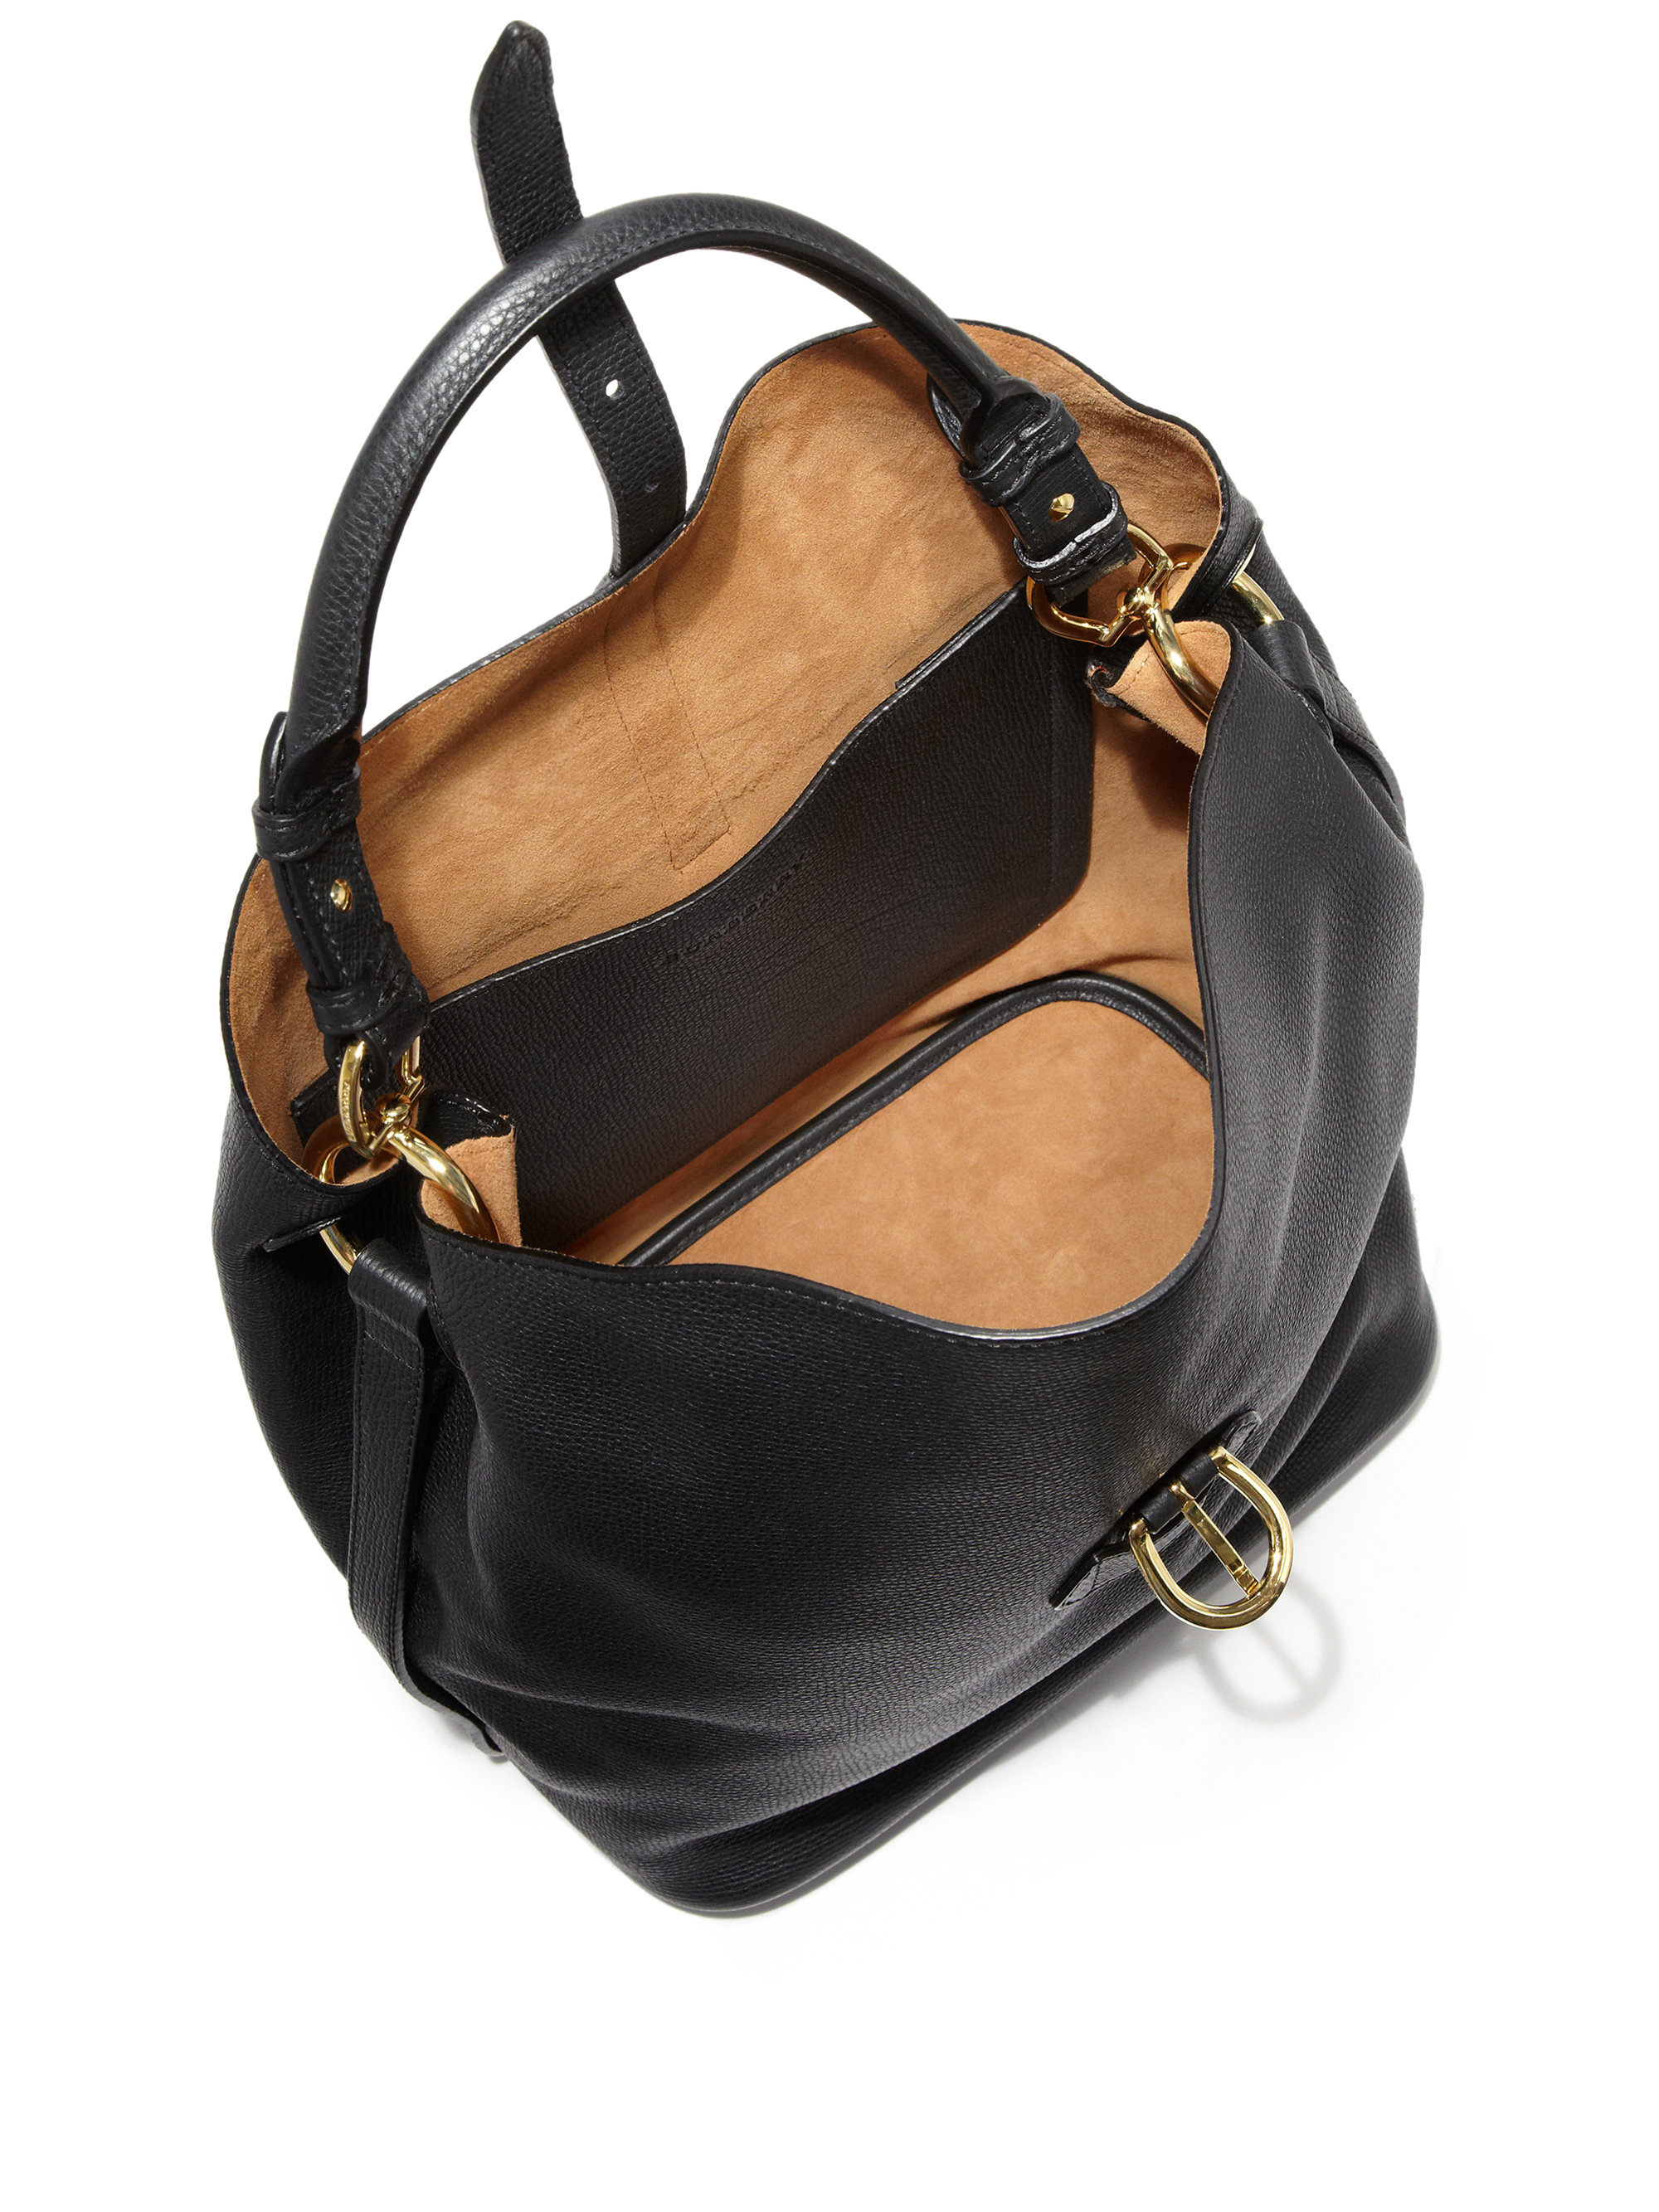 2099f2d90 Burberry Sycamore Medium Leather Hobo Bag in Black - Lyst